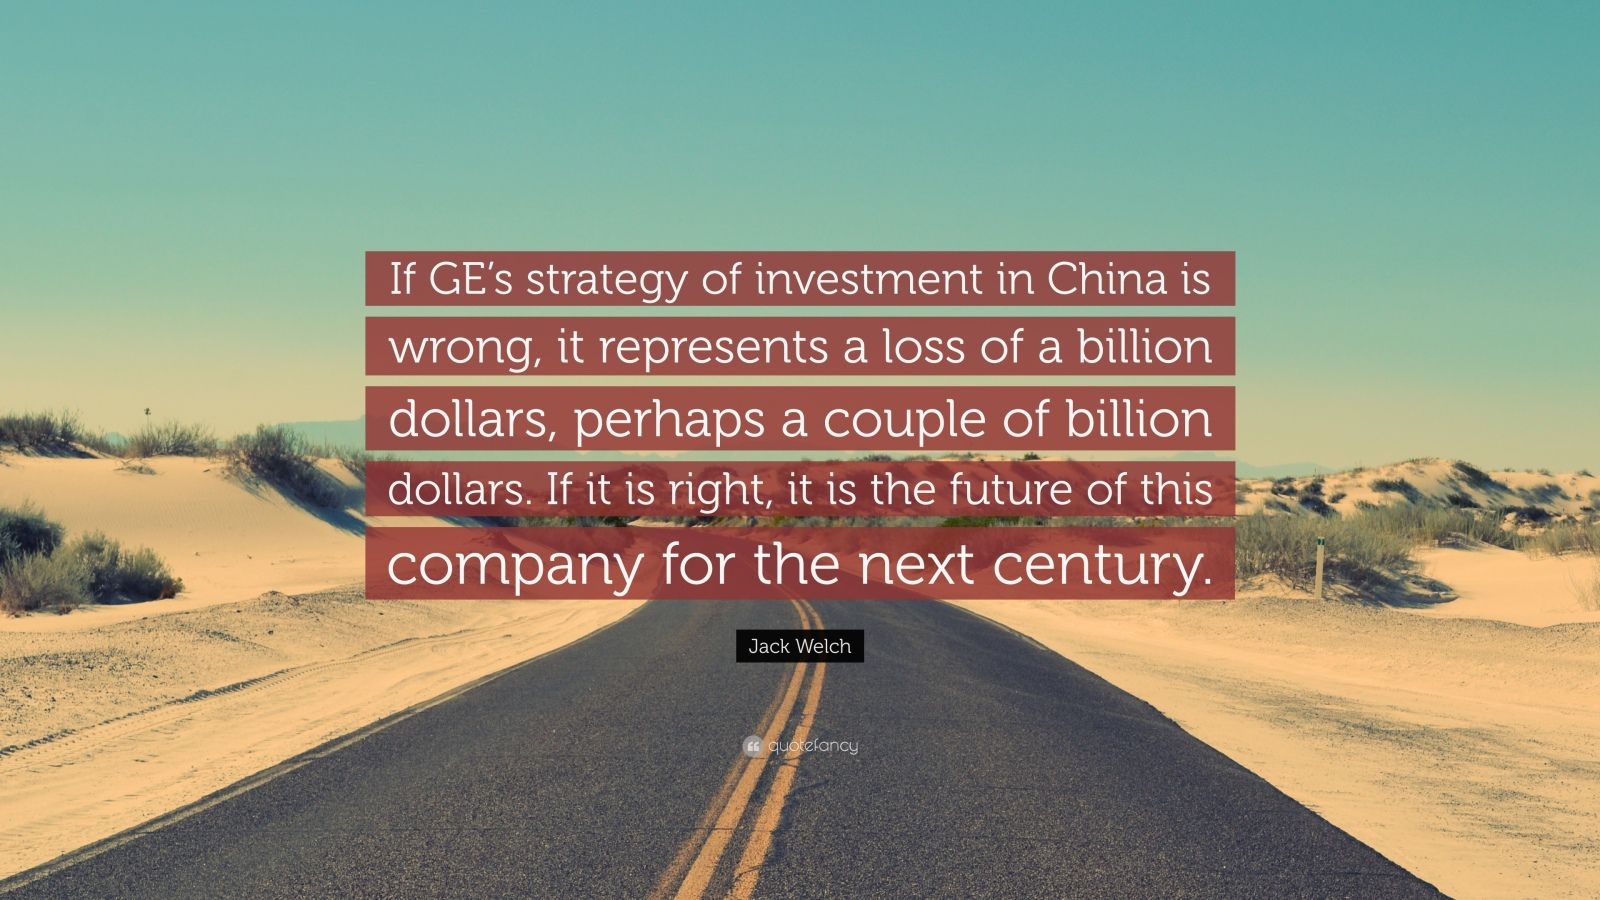 "Jack Welch Quote: ""If GE's strategy of investment in China is wrong, it represents a loss of a billion dollars, perhaps a couple of billion dollars. If it is right, it is the future of this company for the next century."""